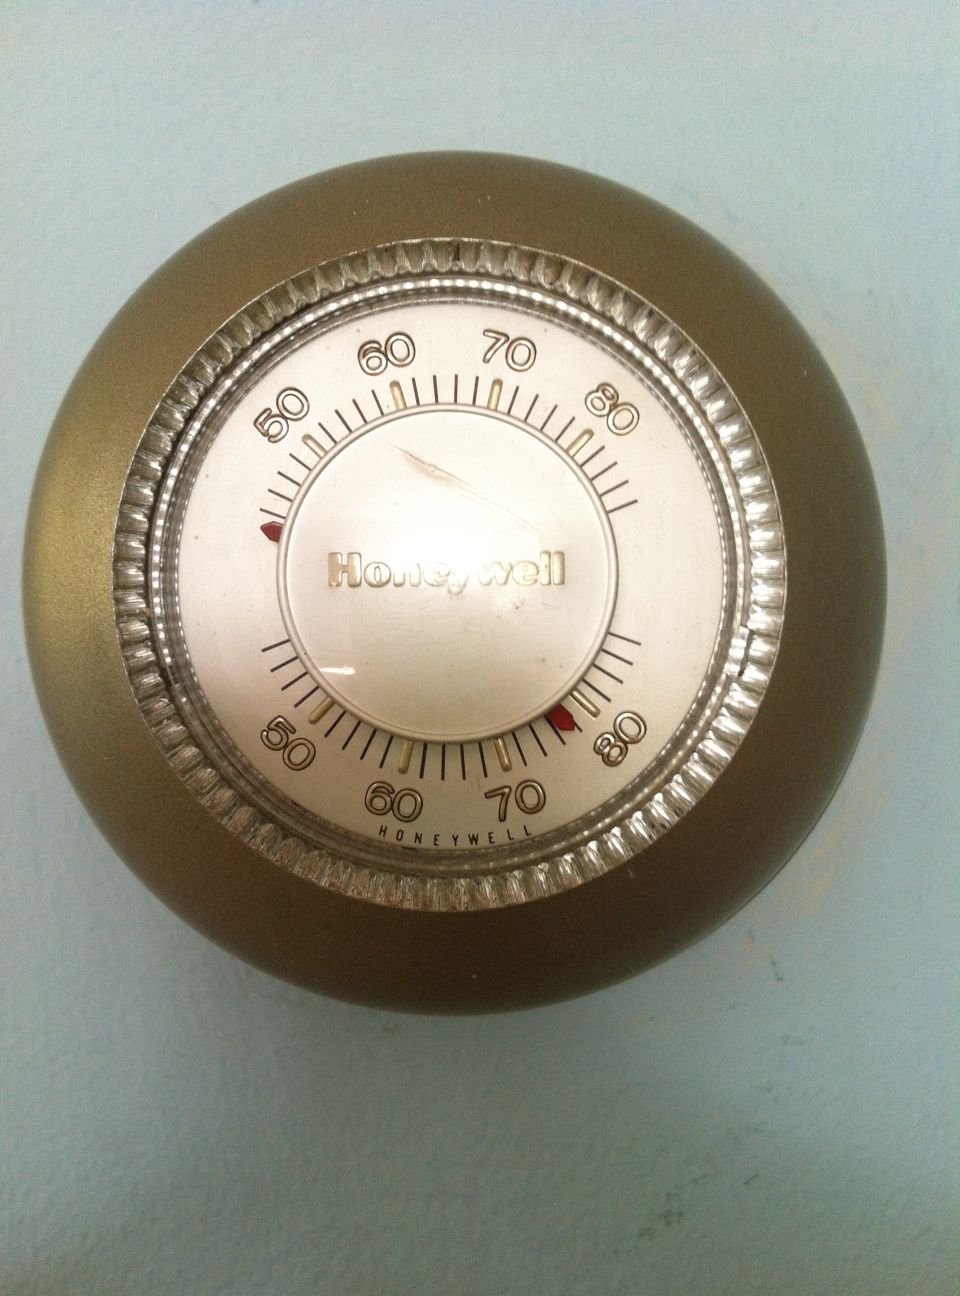 Vintage Honeywell thermostat made shiny and new. My Time